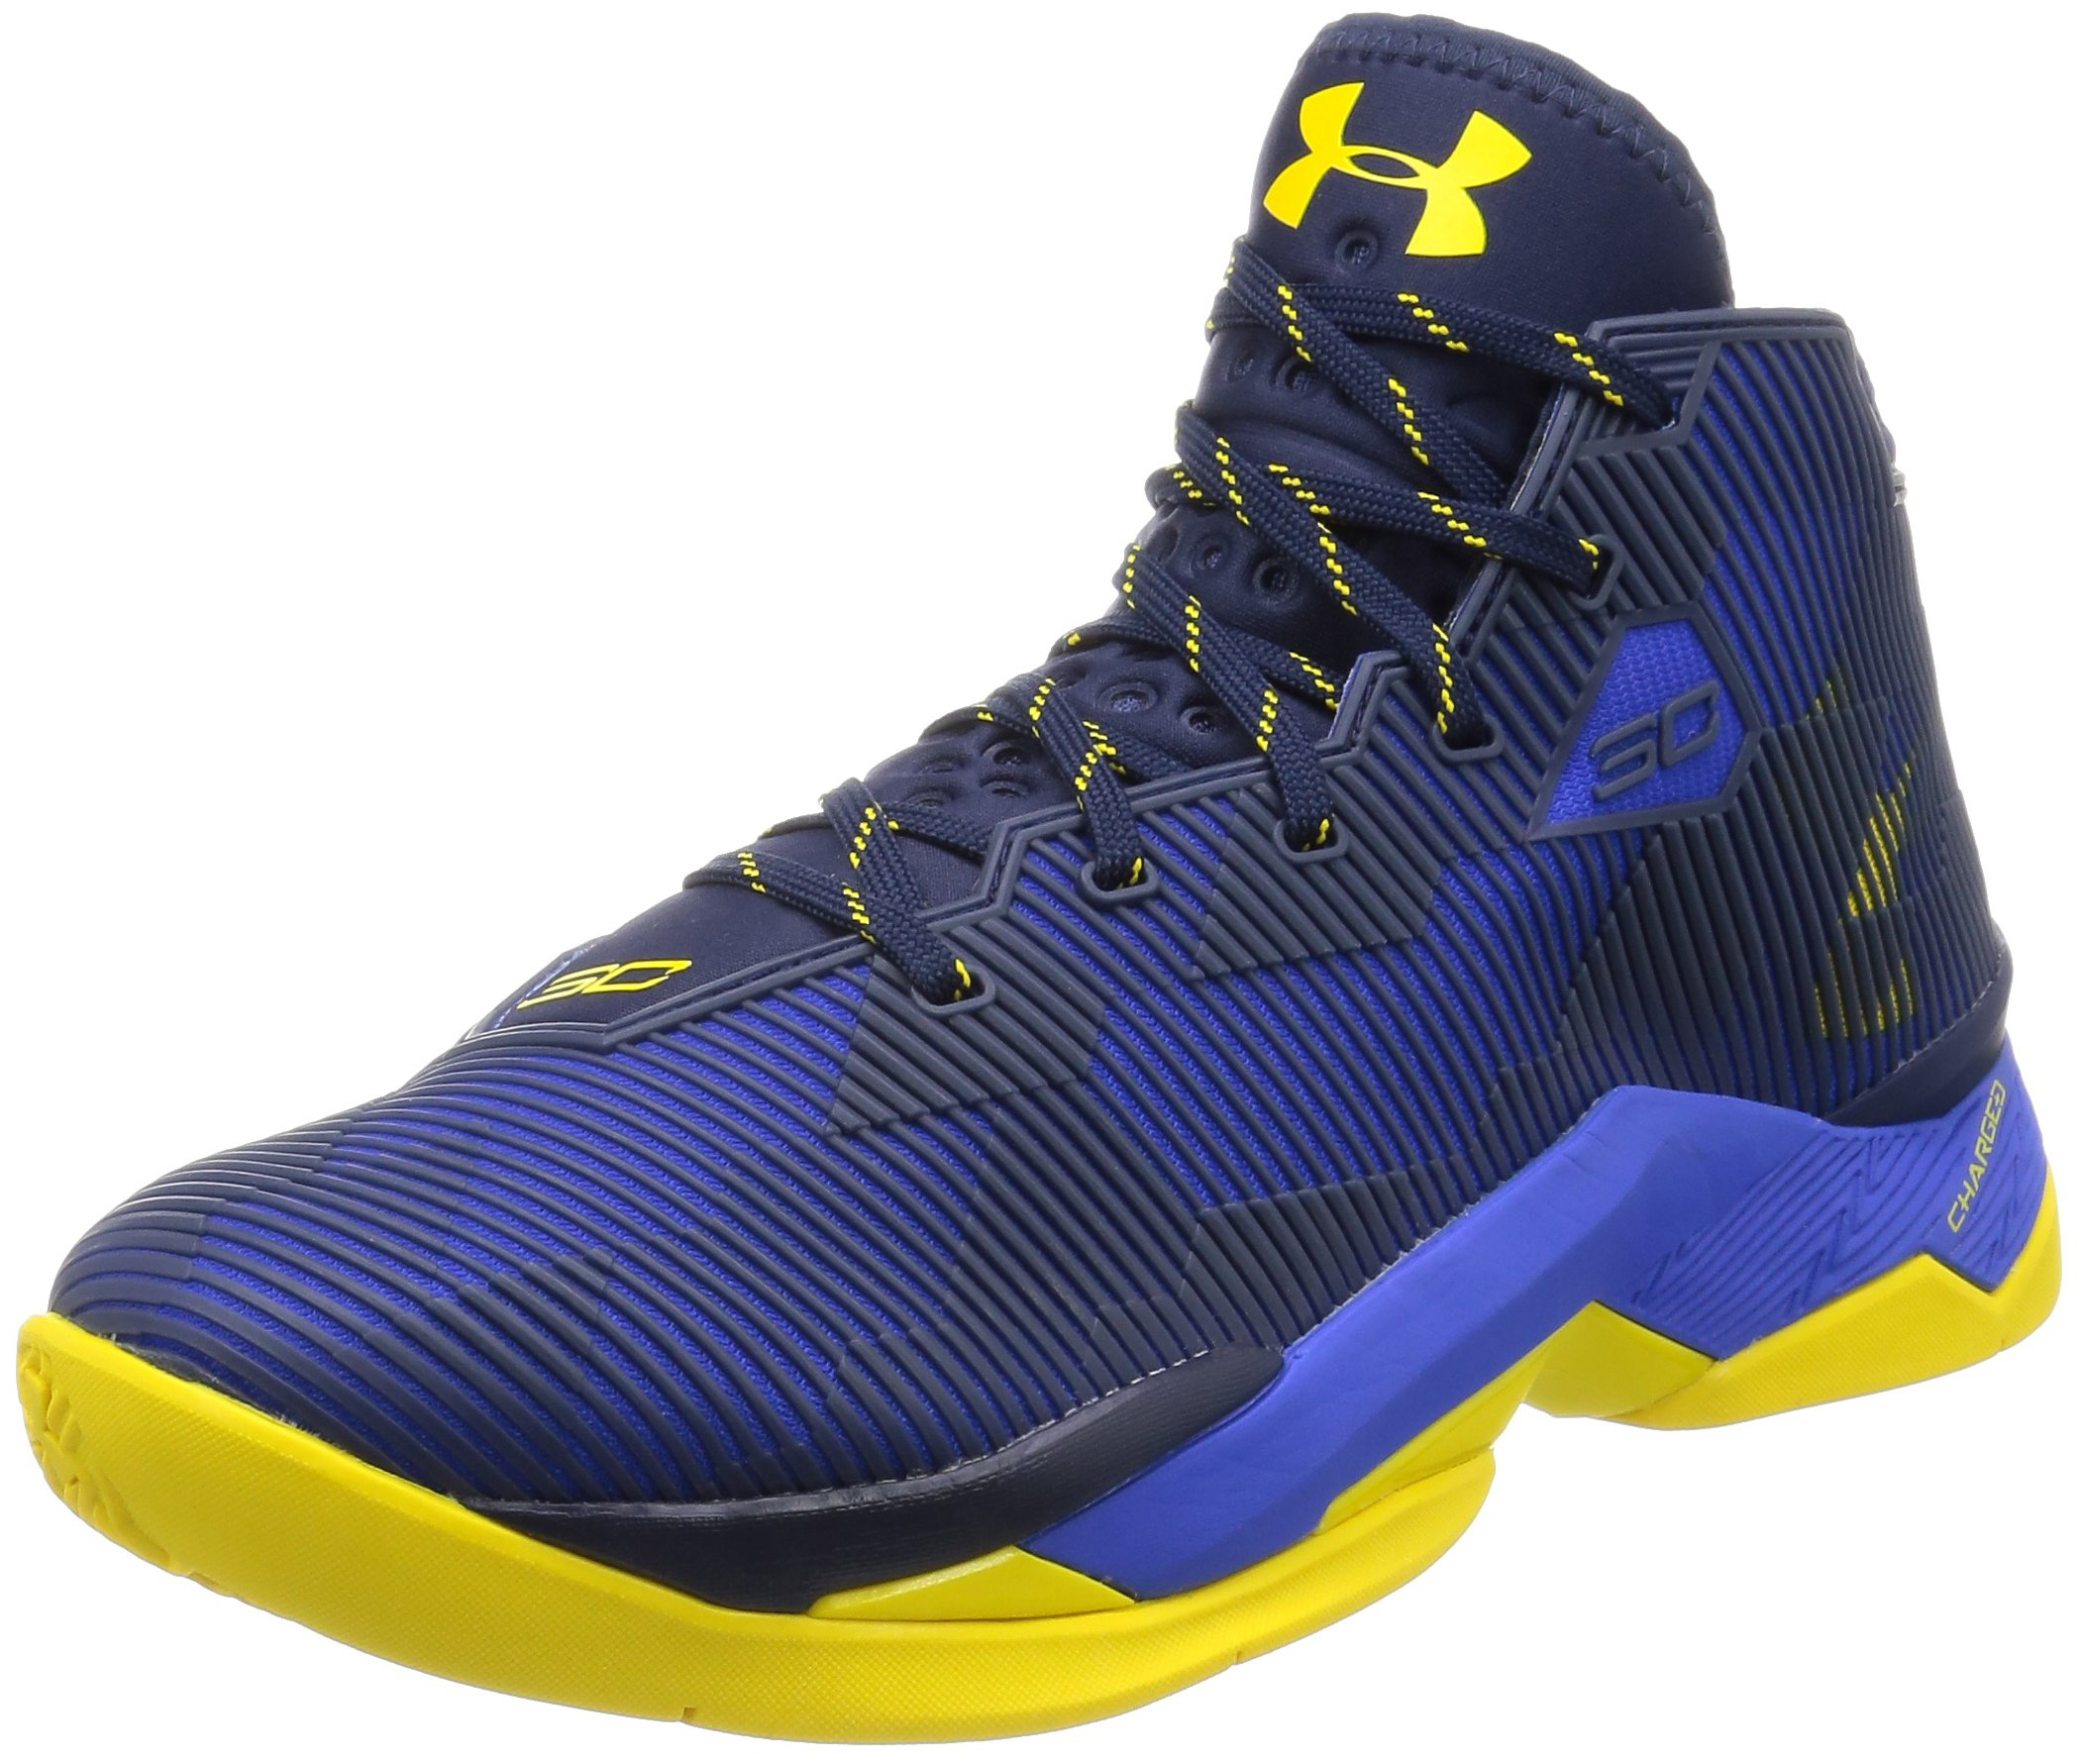 22969c5de60b Galleon - Under Armour Men s Curry 2.5 Basketball Shoes Team Royal Midnight  Navy Taxi Size 8 M US